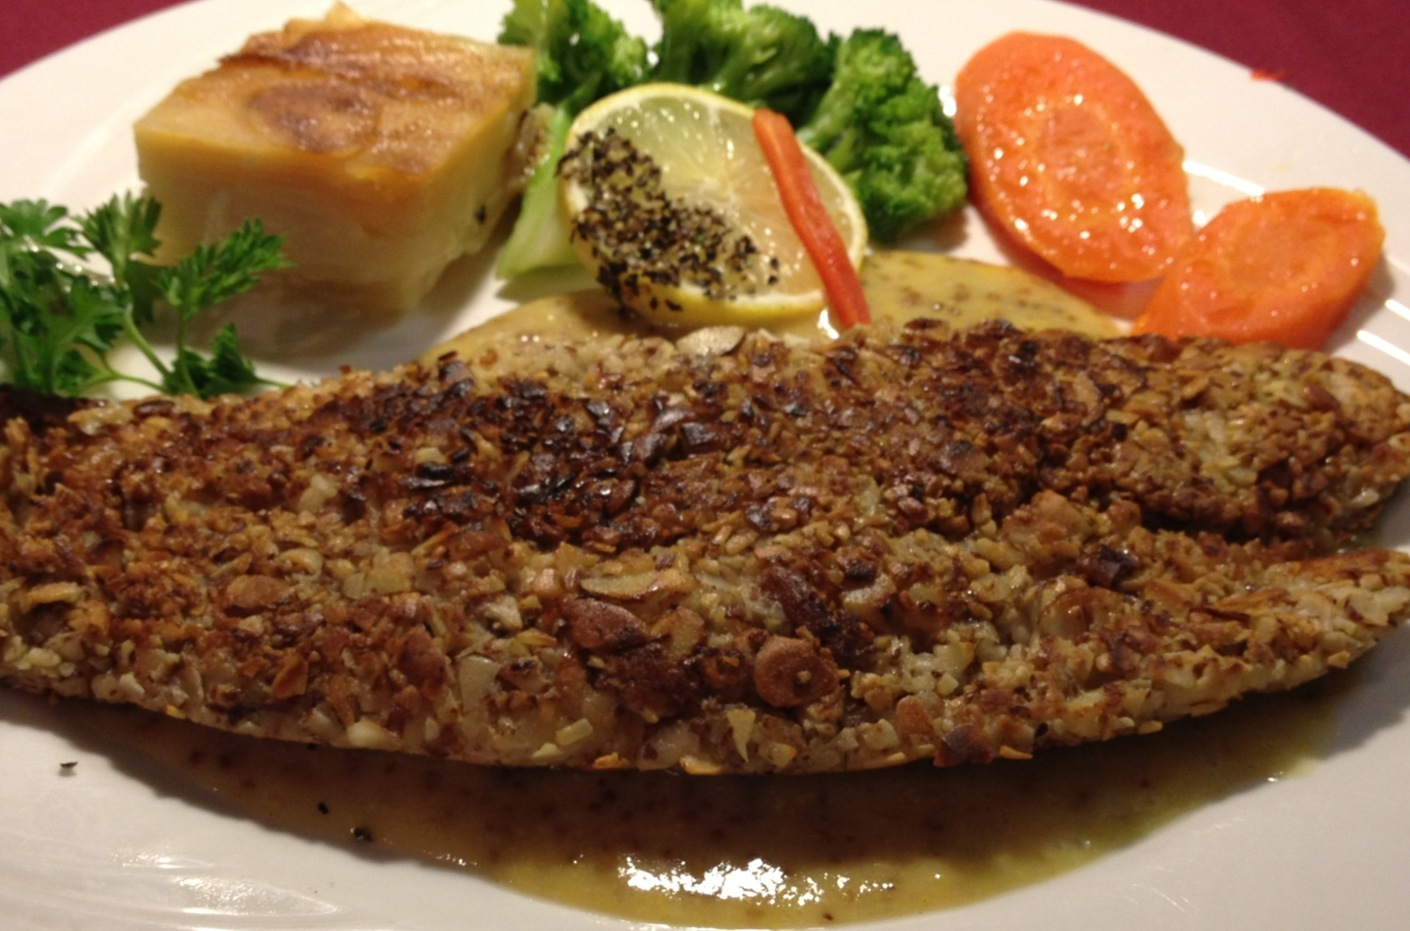 Almond Crusted Sole Fillet with Warm Honey-Mustard Sauce